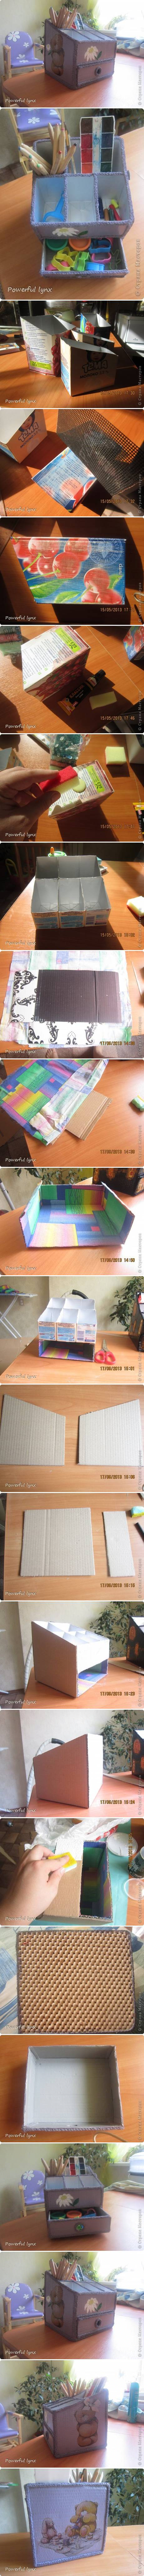 How To Make Beautiful Desk Organizer step by step DIY tutorial instructions